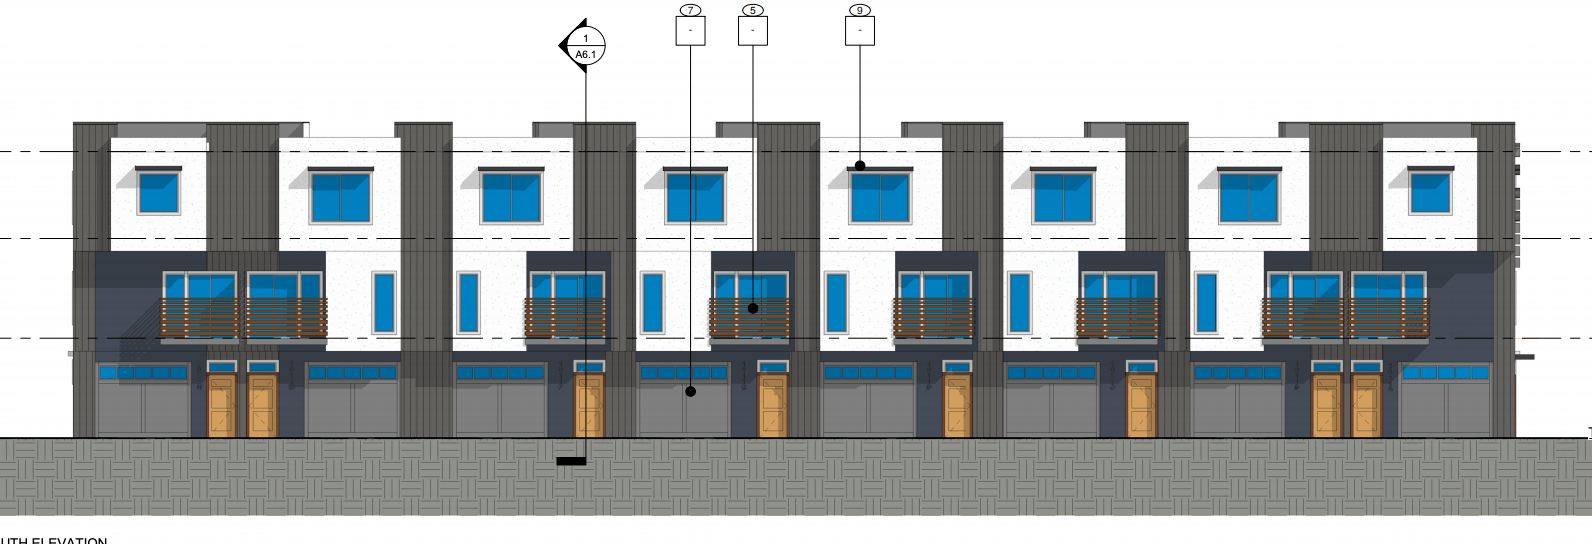 Townhomes proposed to slide into small Bench lot